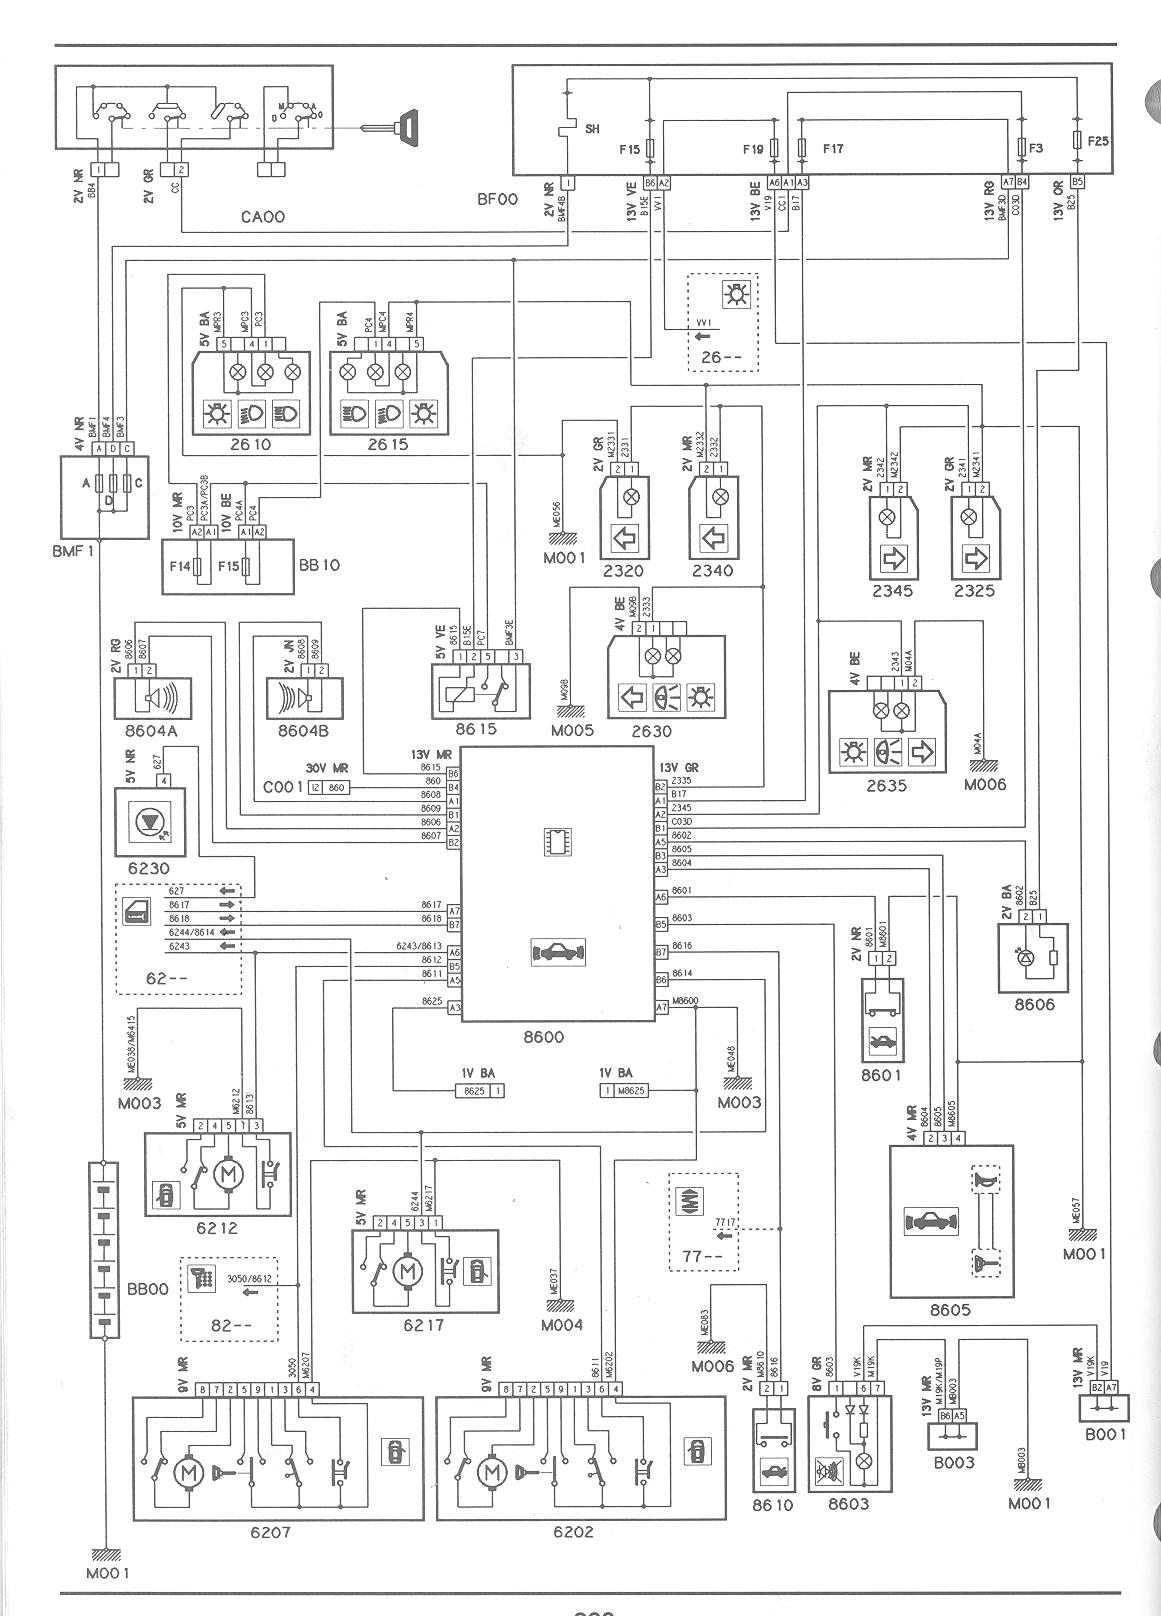 Citroen Alarm Wiring Diagram : Wiring diagram citroen xantia engine start choice image